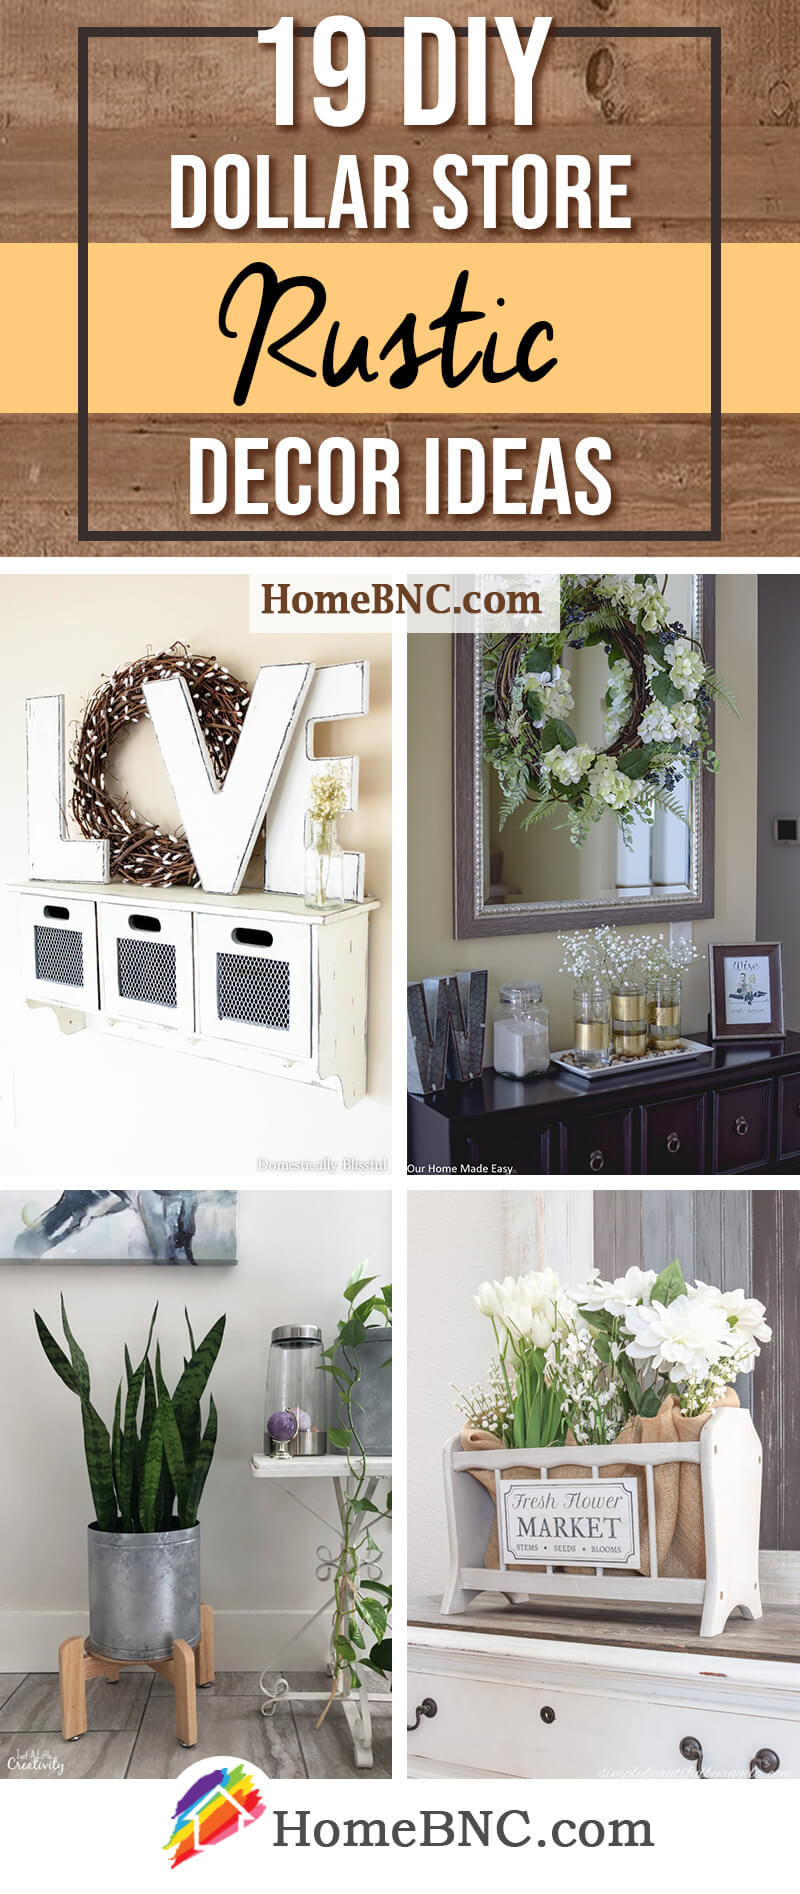 14 Best DIY Dollar Store Rustic Home Decor Ideas for 14